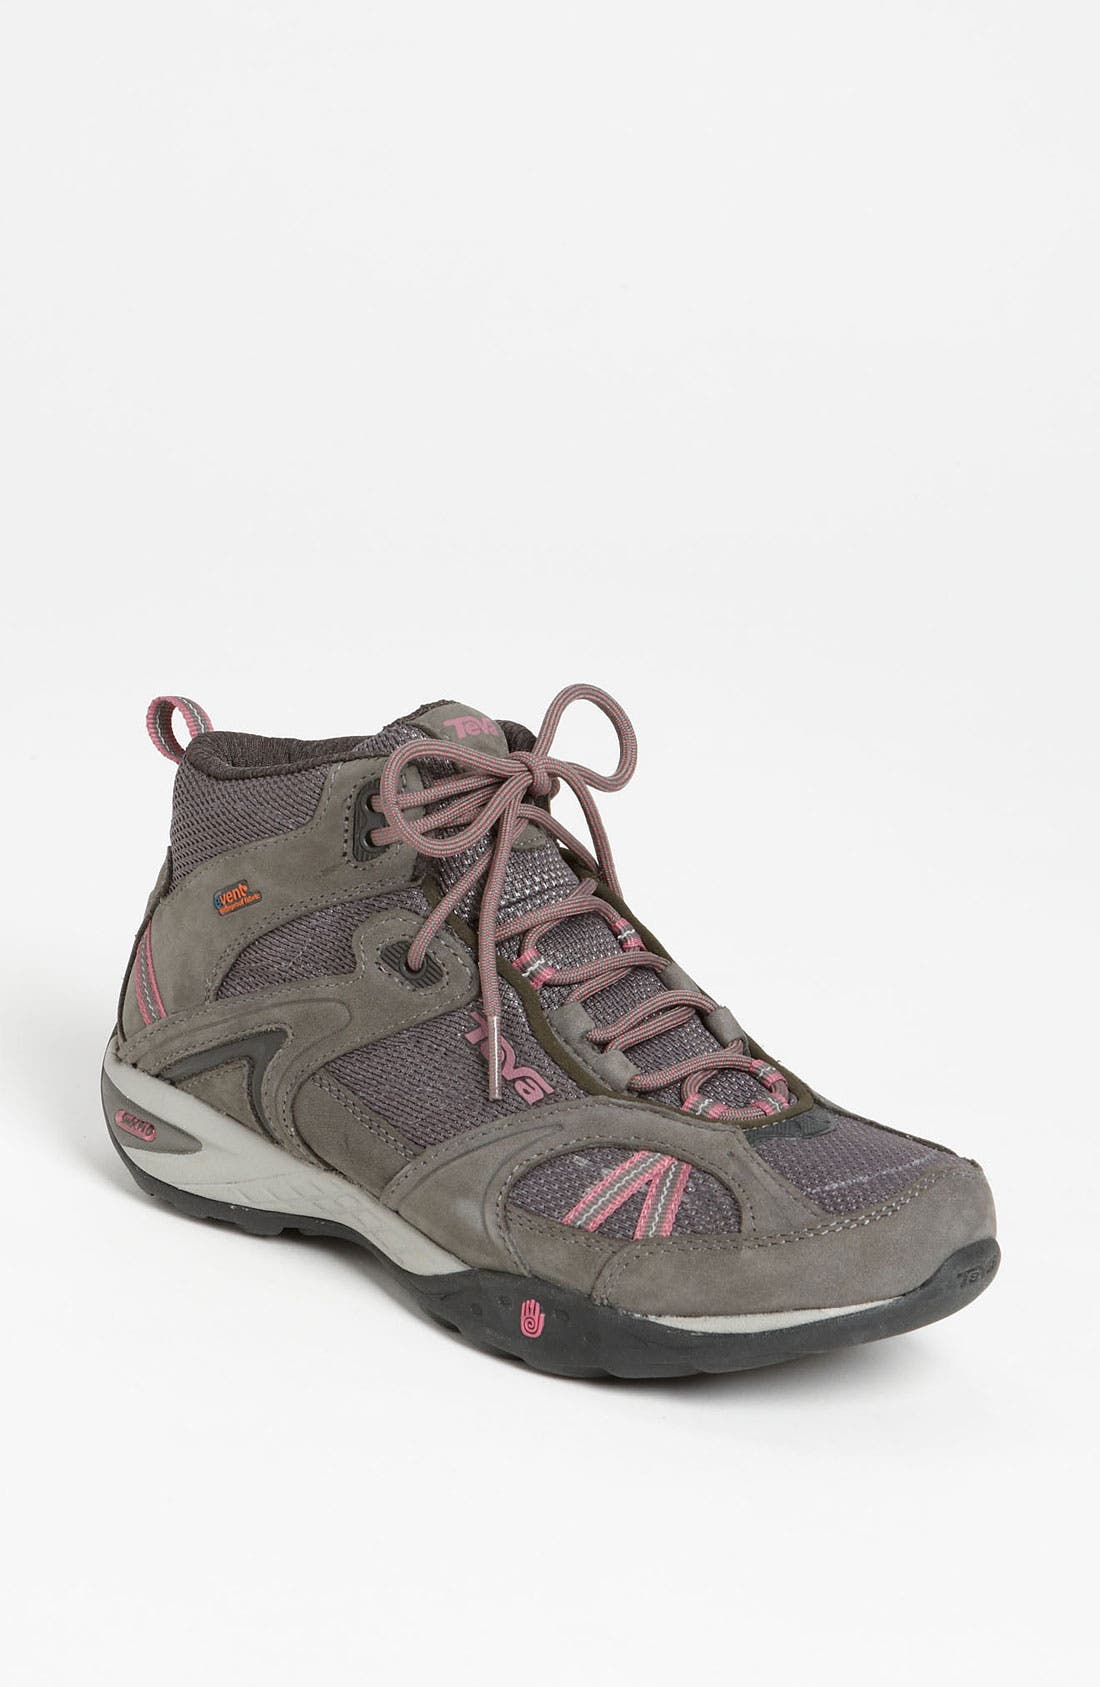 Alternate Image 1 Selected - Teva 'Sky Lake Mid eVent®' Hiking Boot (Women)